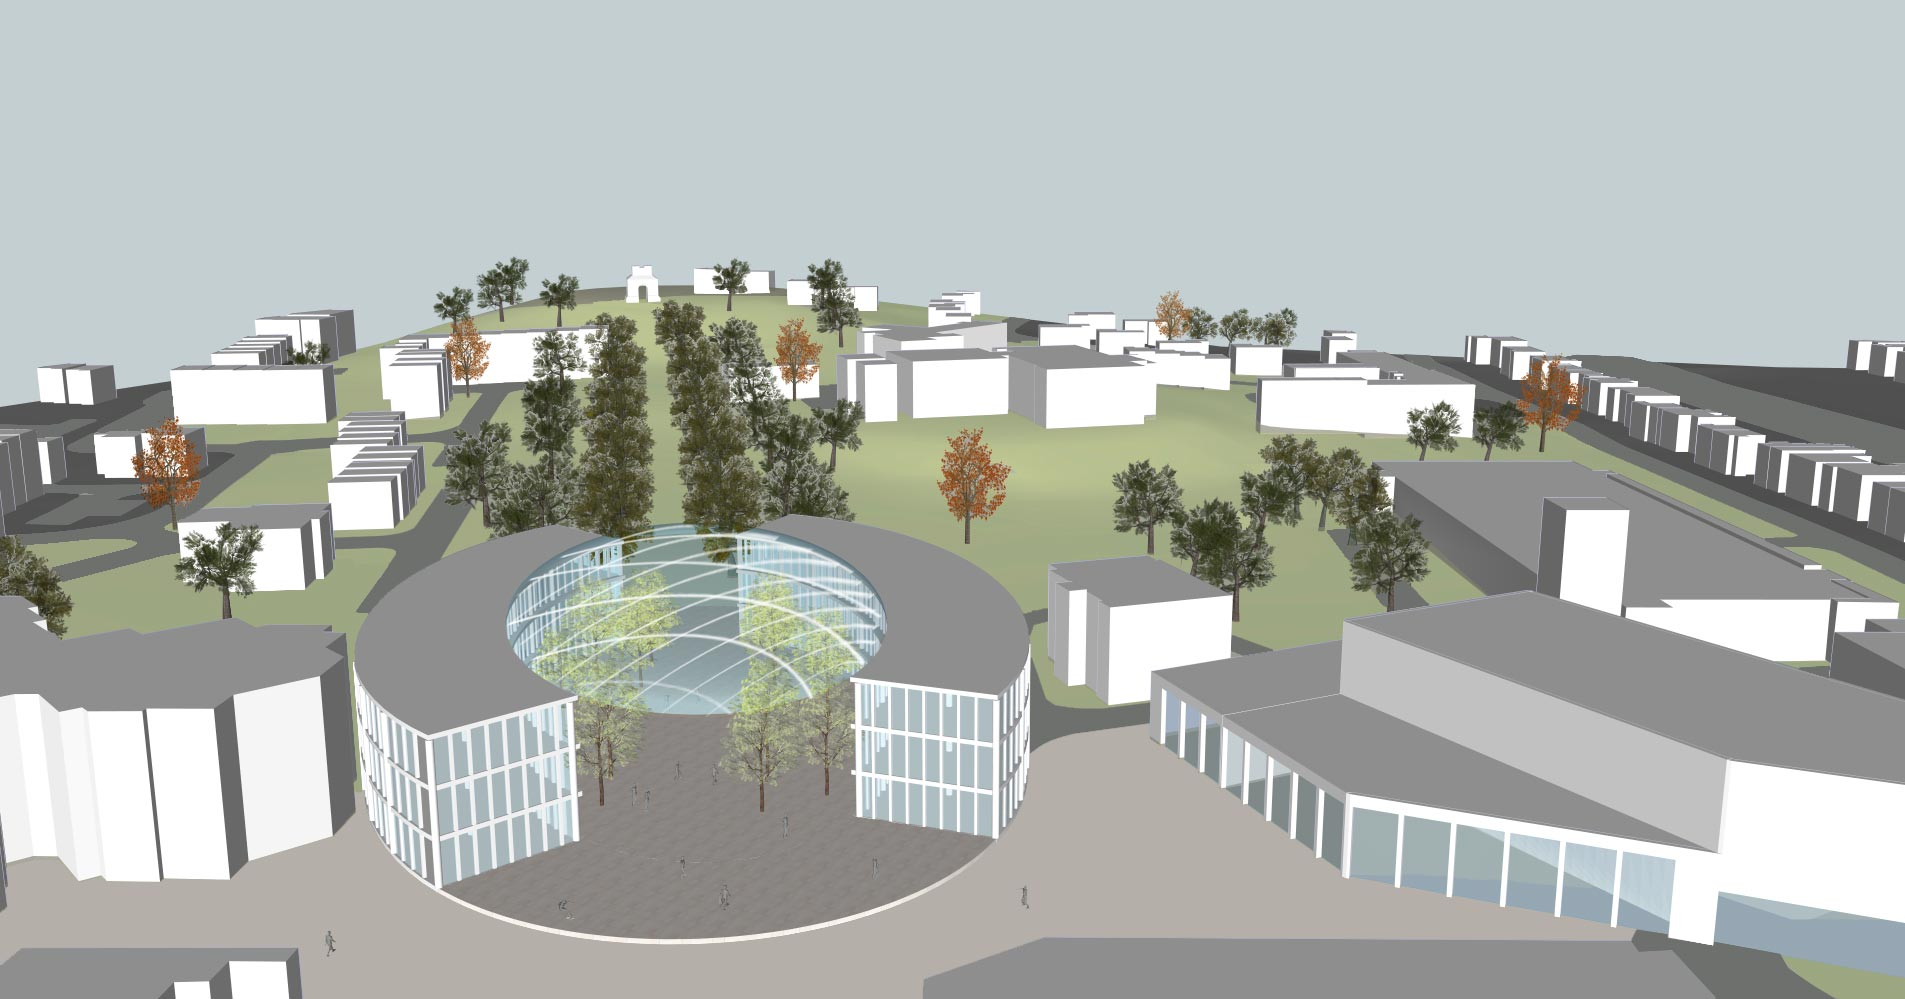 Camberley Cultural Quarter Masterplan - Front view with park